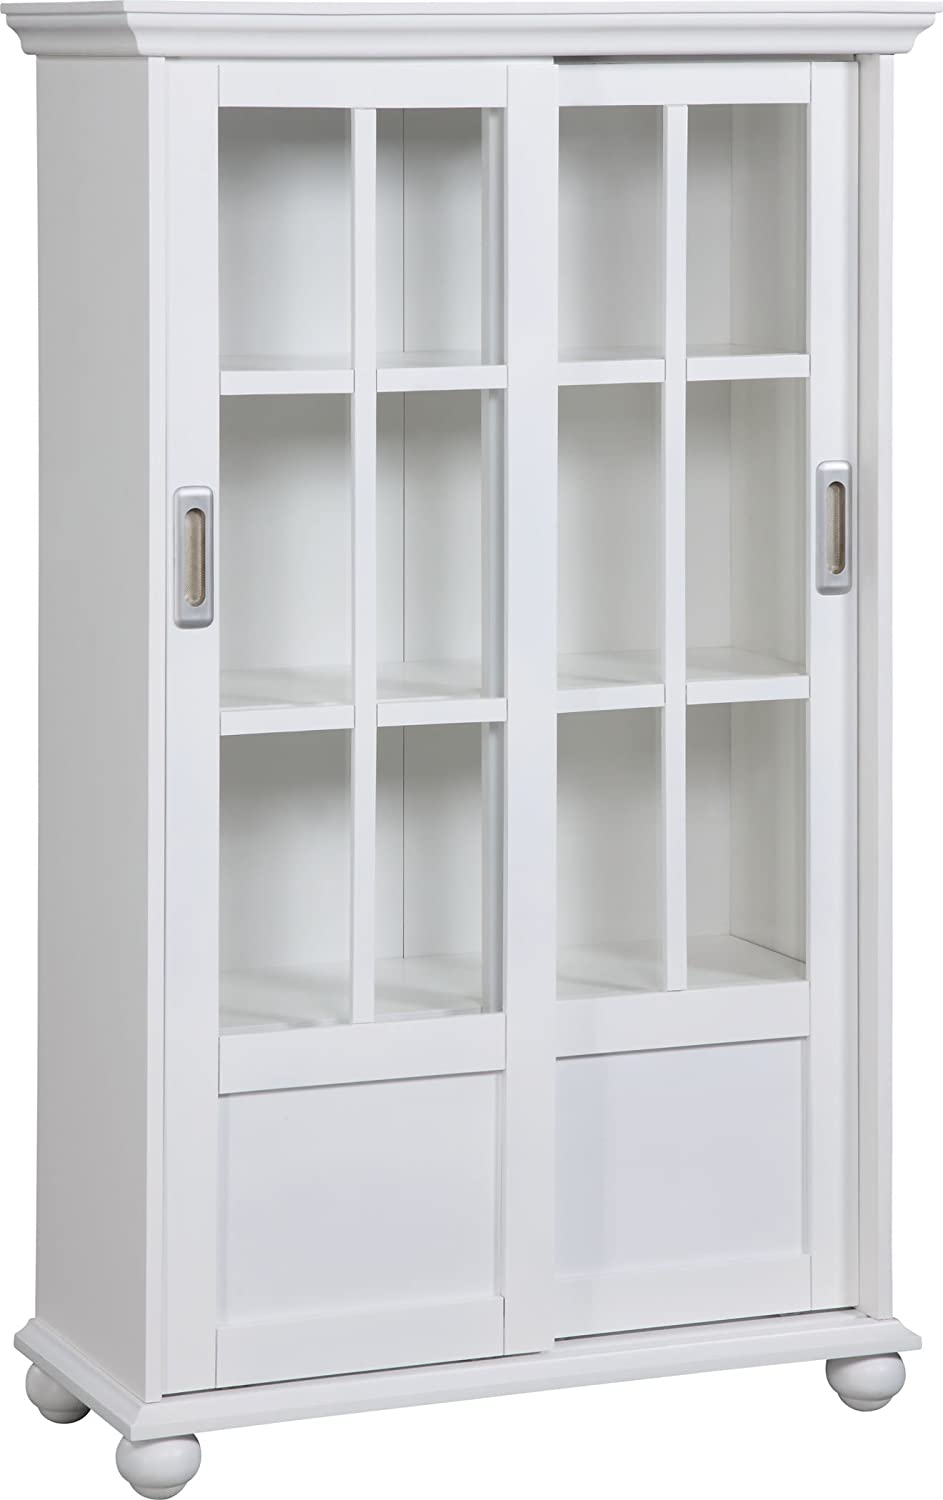 Design Glass Bookcase amazon com altra 9448096 bookcase with sliding glass doors white kitchen dining